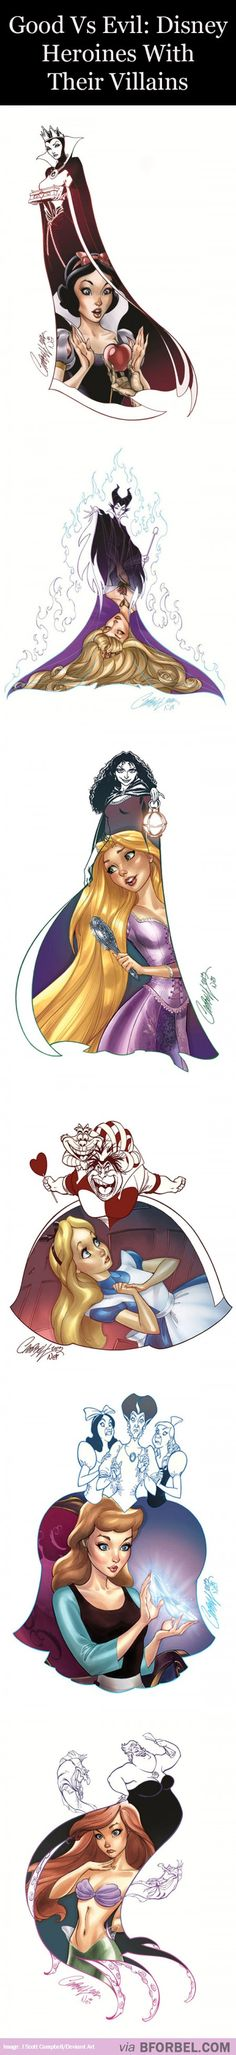 5 Disney Heroines And Their Villains…